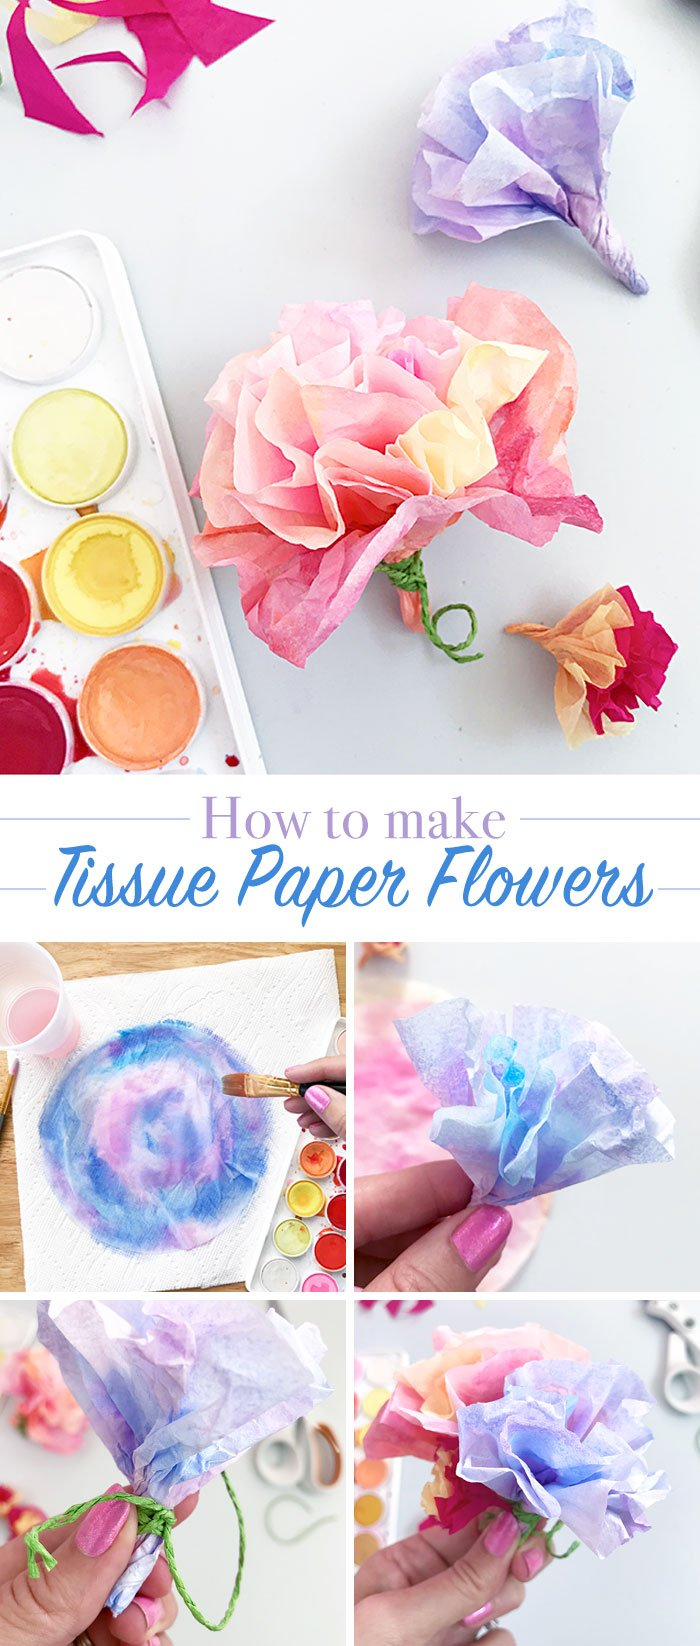 Make easy tissue paper flowers with these step by step instructions. An easy guide to making these flowers and adding them to your decor this spring!